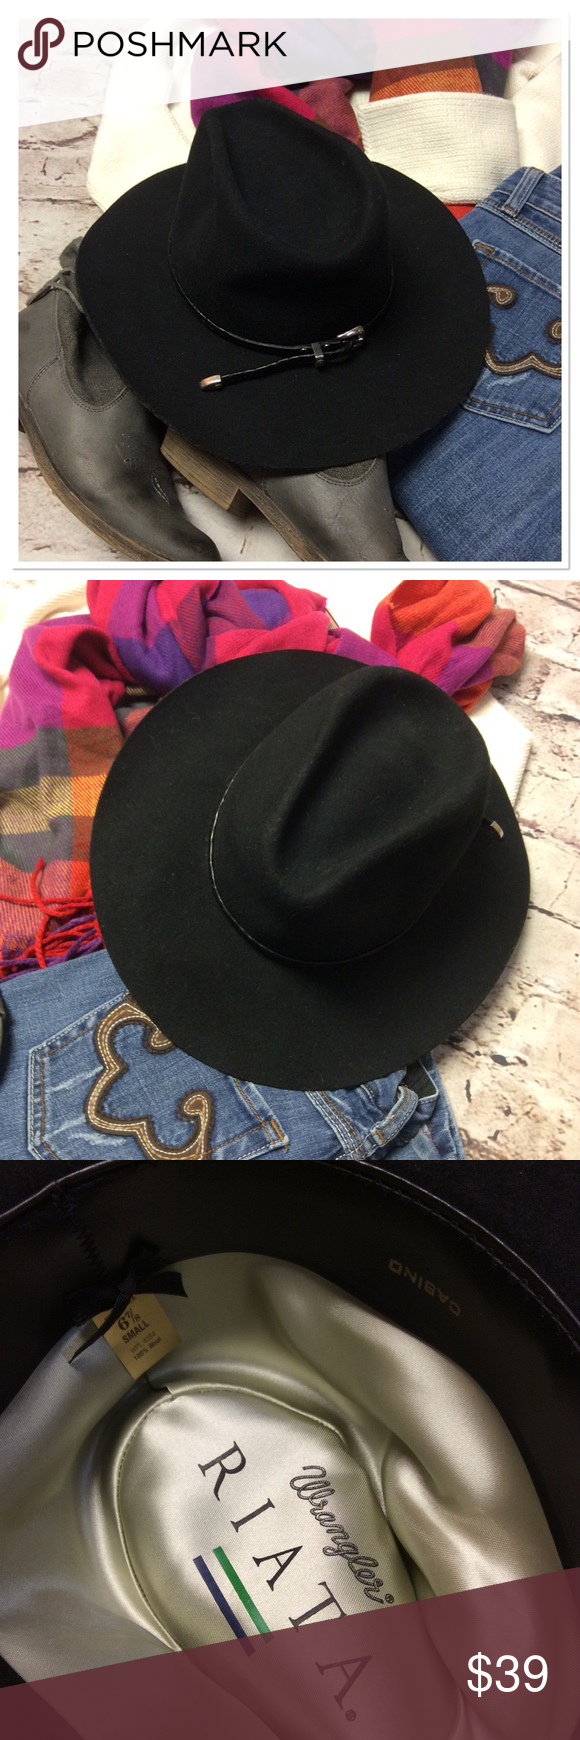 71fa7b0bed5 WRANGLER RIATA CASINO WESTERN HAT This could be unisex. It s in like new  condition with braided trim. Perfect for the western lover.